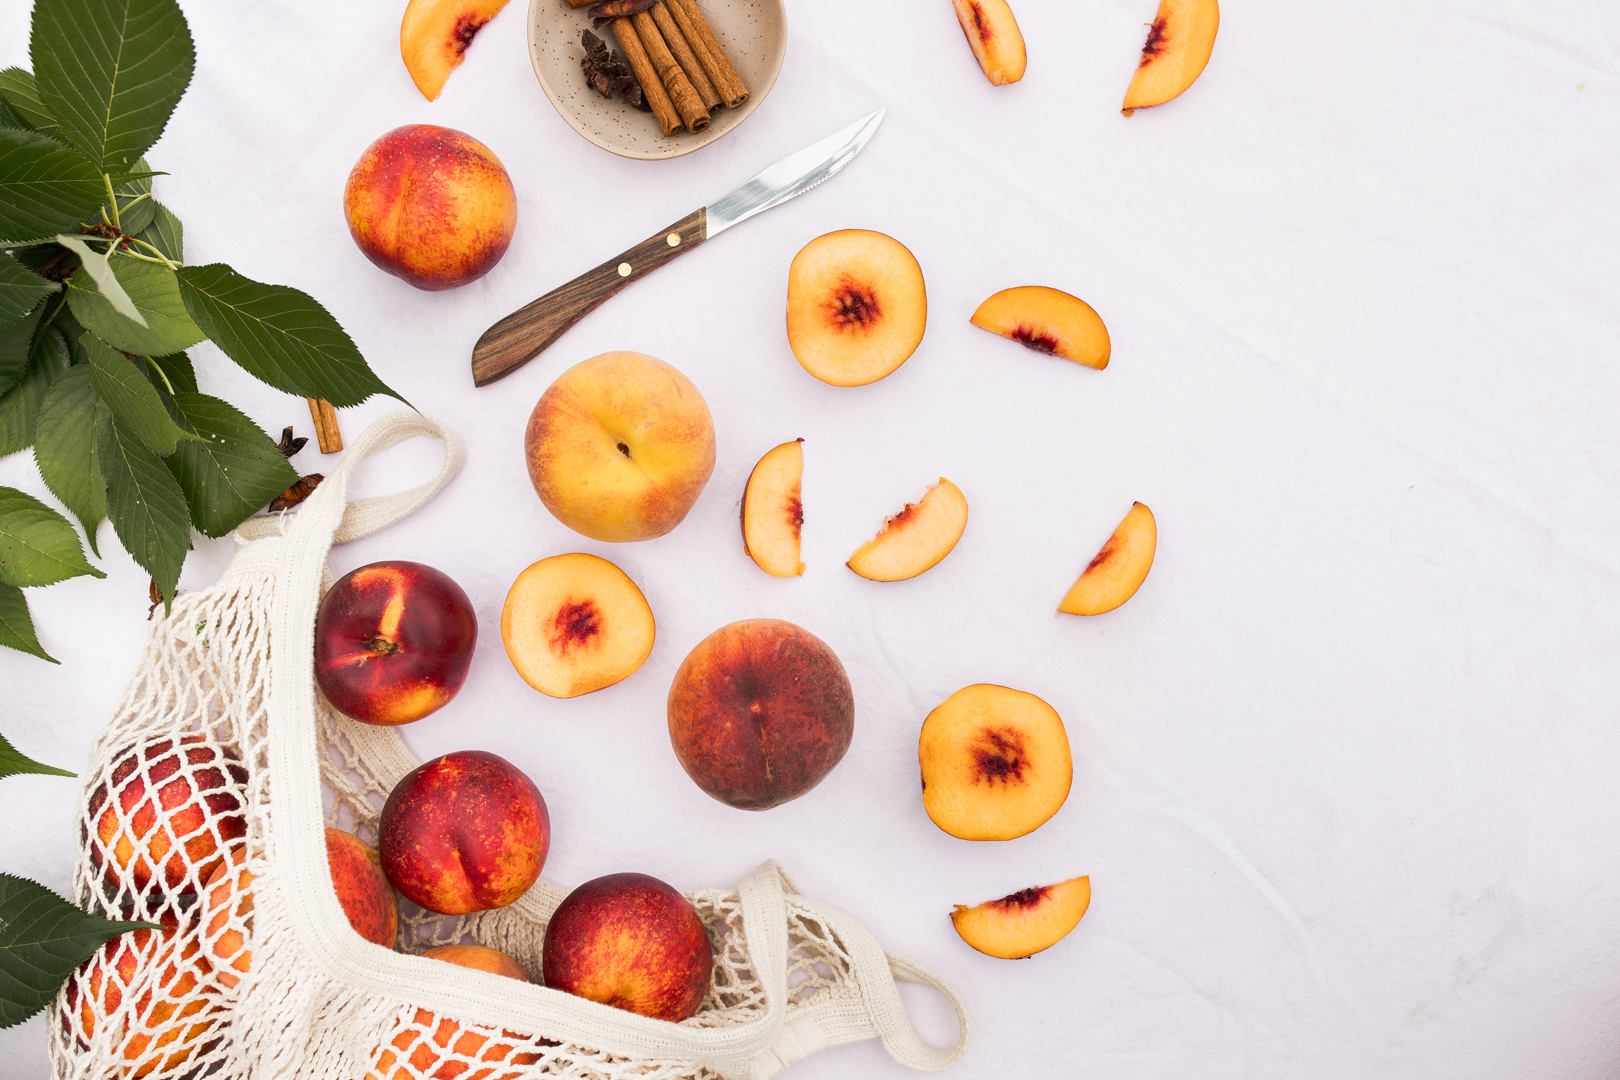 Freshmax peaches & nectarines 2019-16.jpg